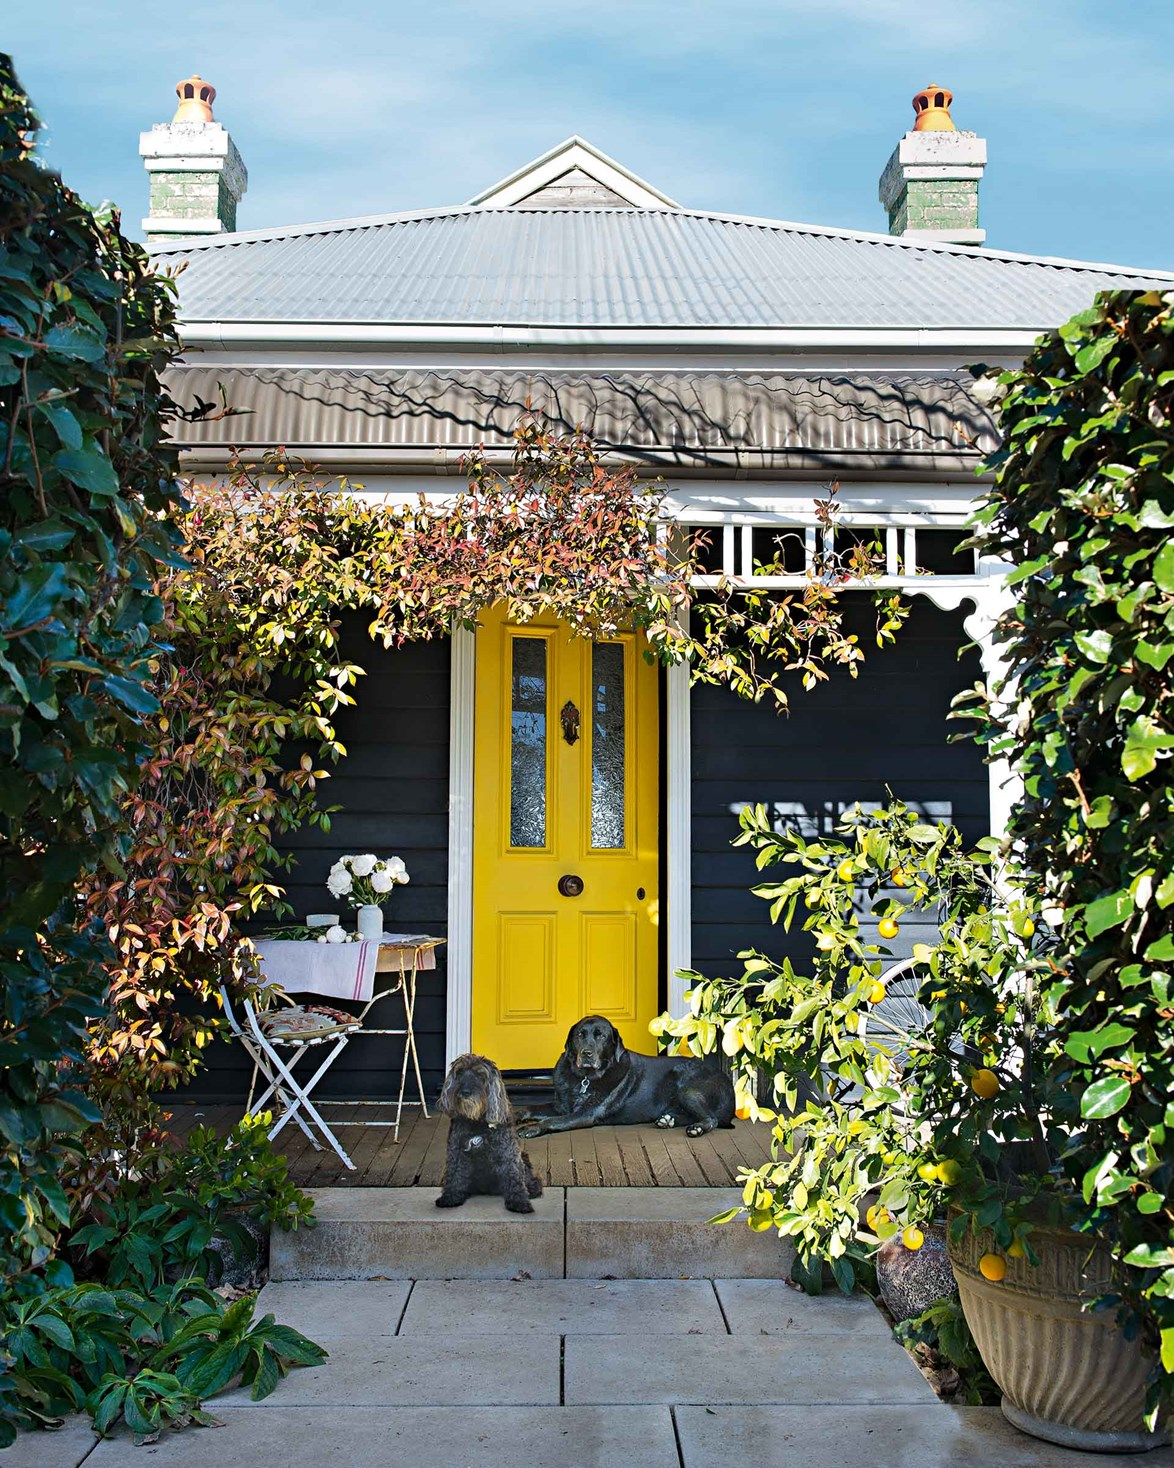 "<p>**PAINT YOUR FRONT DOOR**<p> <p>Be energised as soon as you pull into the driveway with a [statement front door](https://www.homestolove.com.au/statement-doors-are-the-latest-home-design-trend-5404|target=""_blank"") that packs a punch. Nothing feels more youthful than a bold pop of colour, so be brave and choose your favourite shade. We're loving the zesty yellow chosen for this [weatherboard cottage in Bowral](https://www.homestolove.com.au/weatherboard-cottage-in-bowral-13647